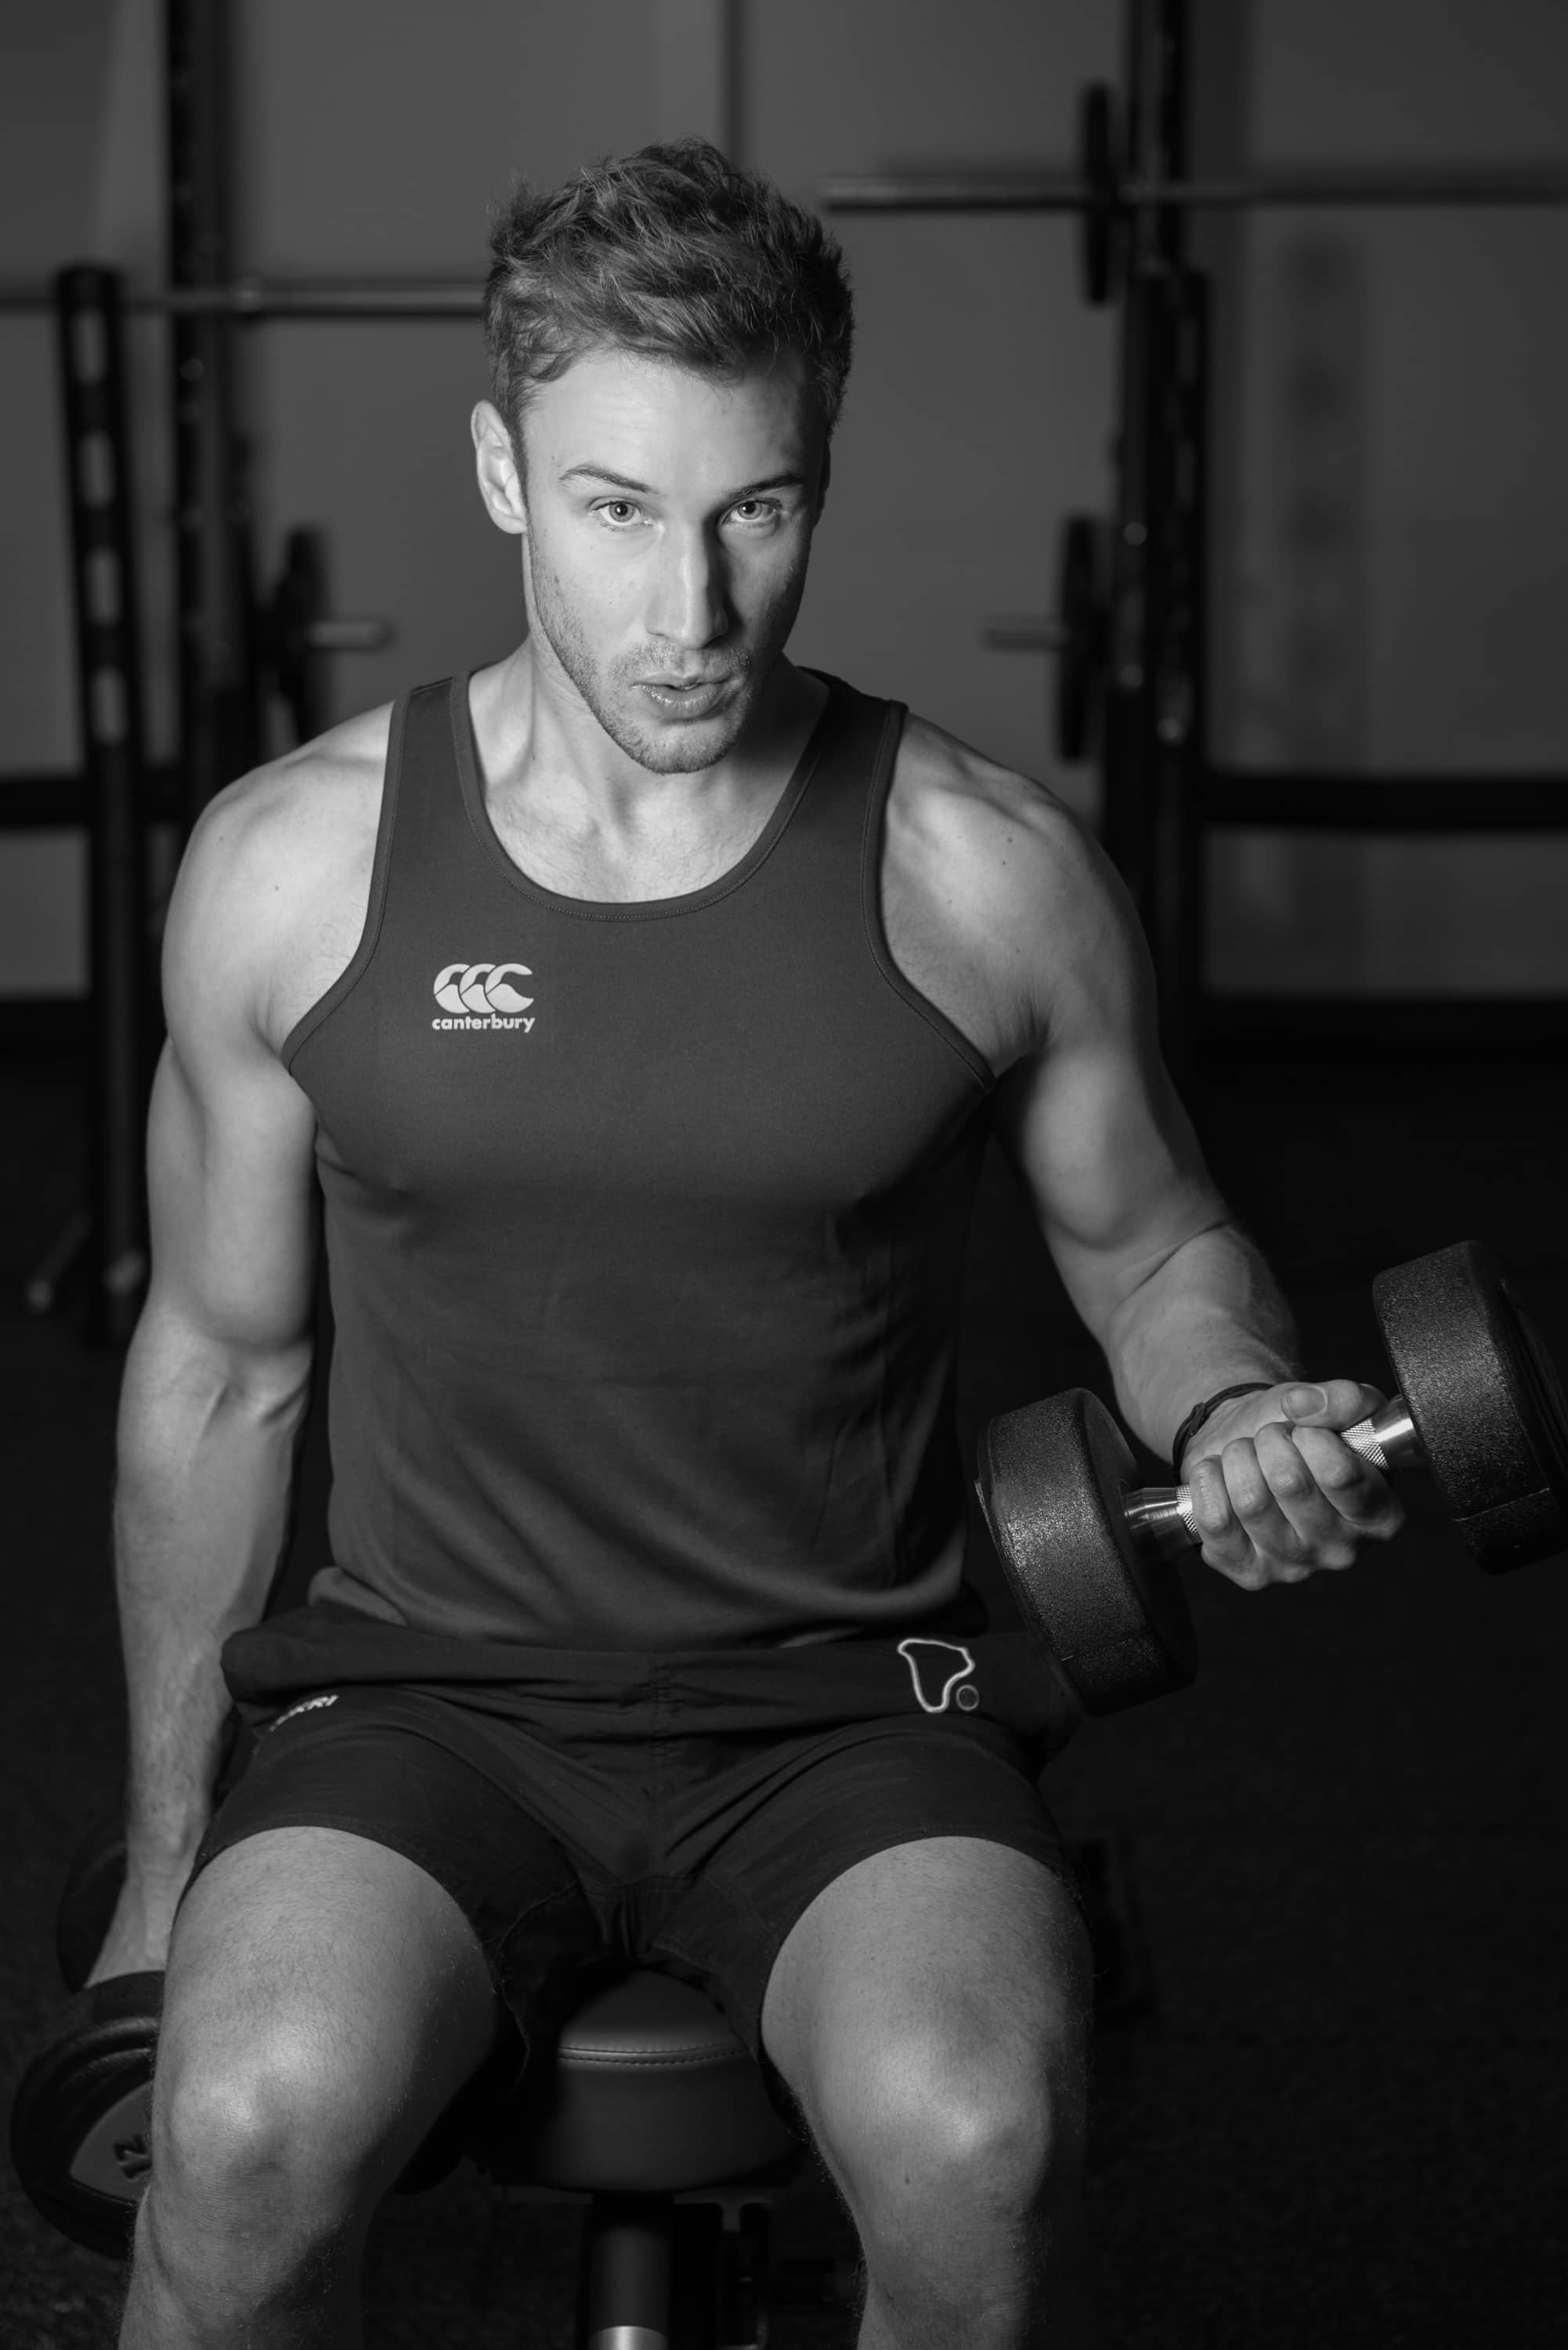 Cardiff-South-Wales-Wedding-Portrait-Photographer-Chris-Sandifer-Chris-Fit-Gym-Pure-gym-work-out-by-Lewis-Fackrell-5